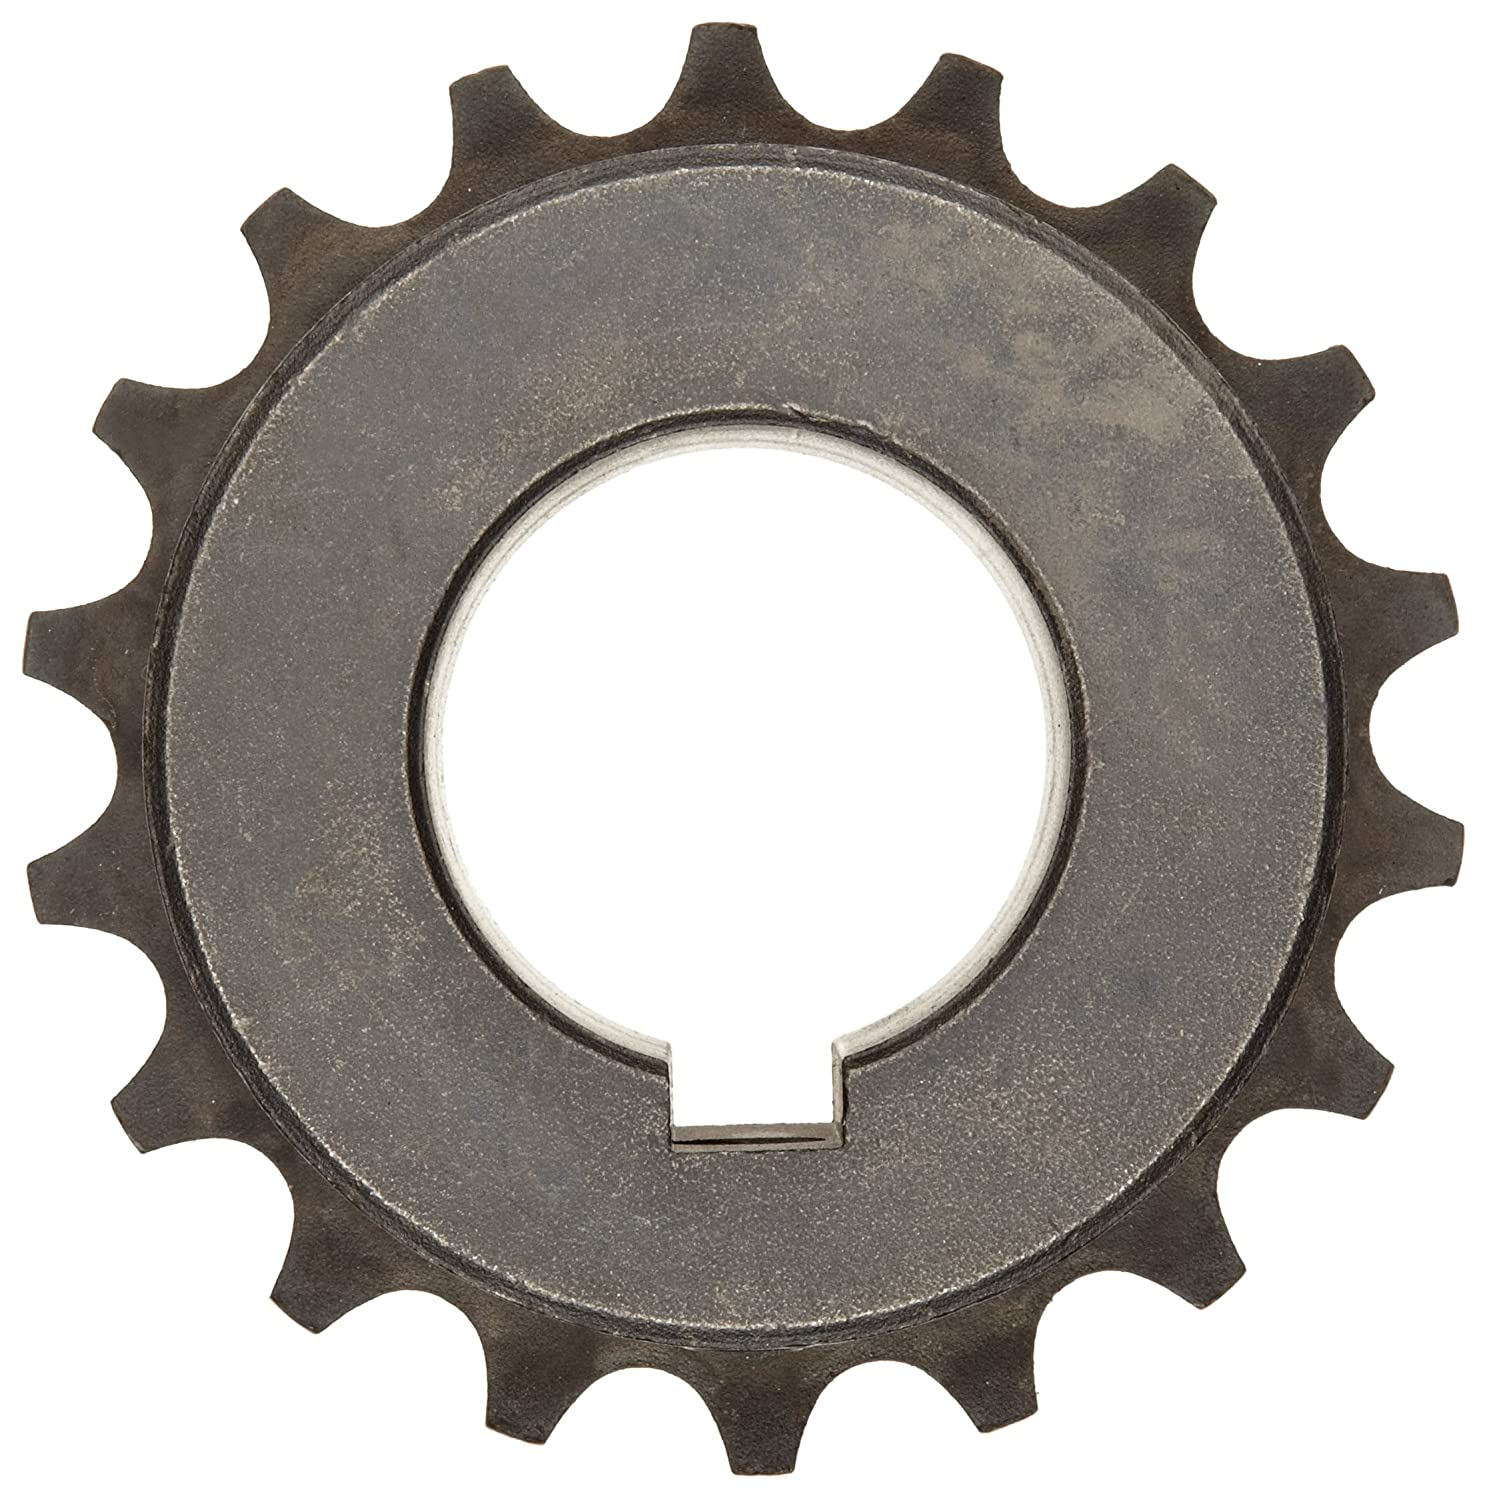 1//4 x 1//8 Keyway Sintered Steel 3600 rpm Max Rotational Speed 4 3//16 OD 1 1//4 Bore Martin 5018 Roller Chain Coupling 18 Teeth Inch 1 11//16 Length